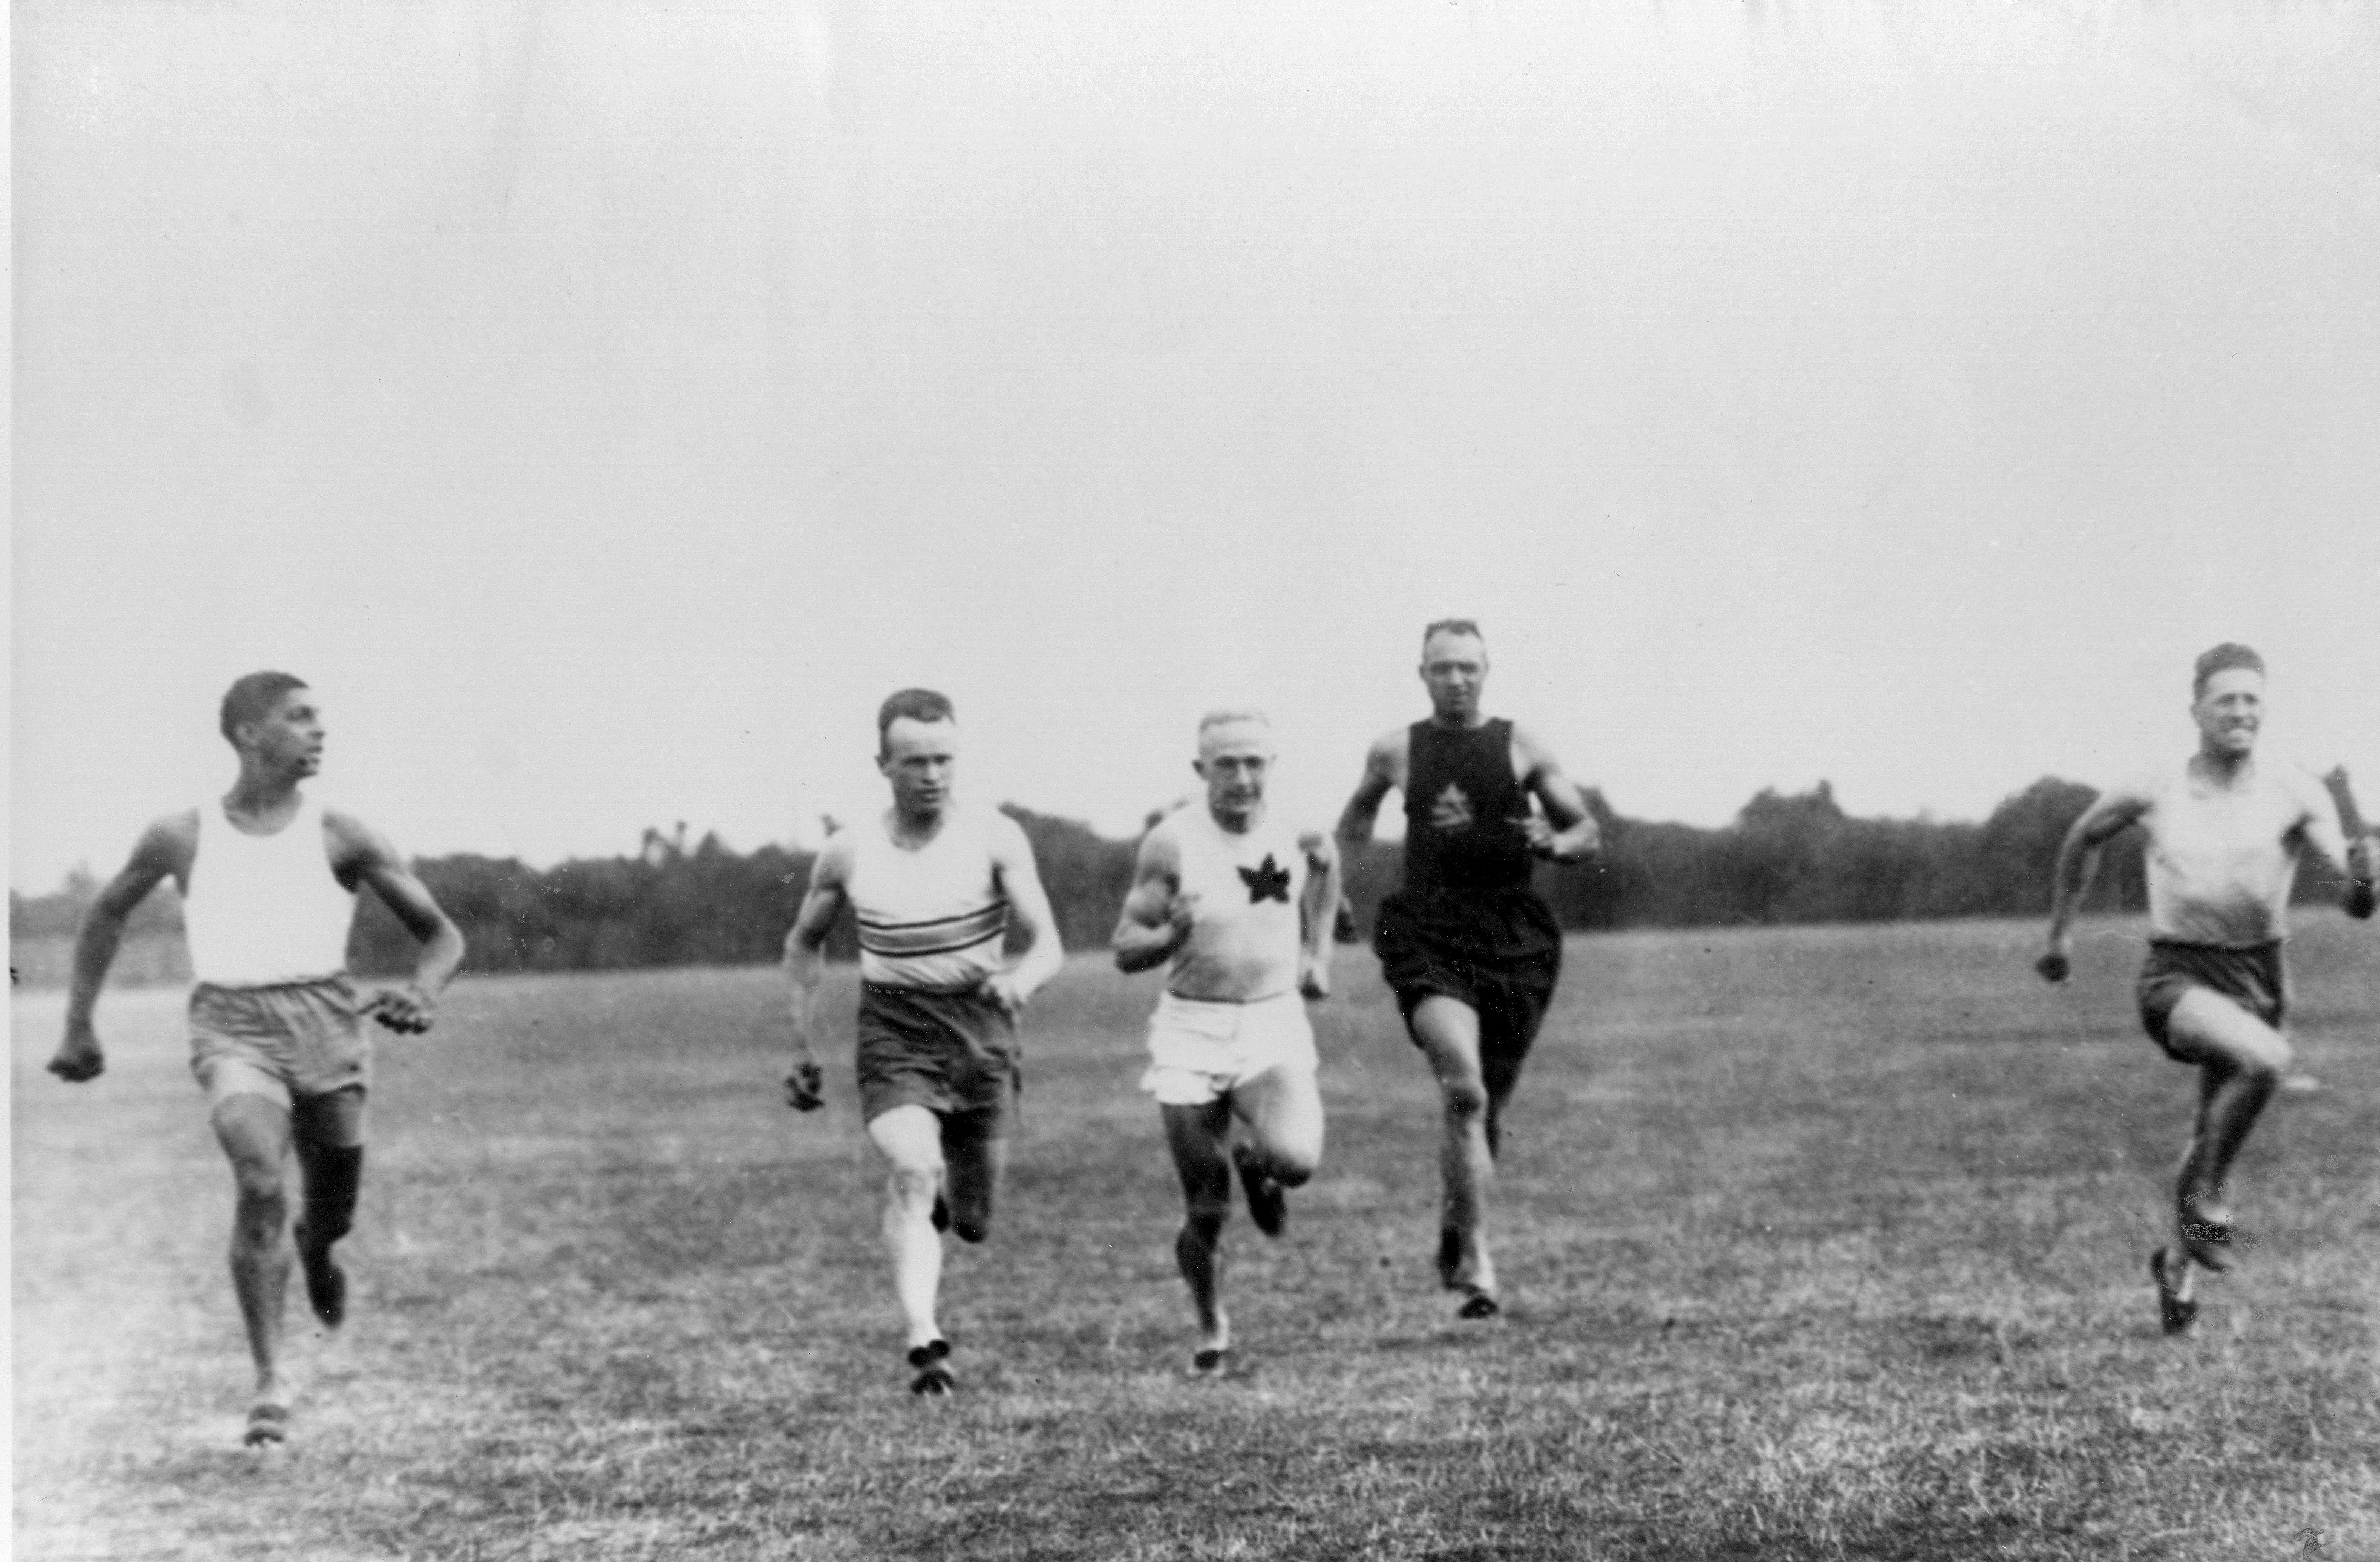 An antique black and white image of a group of five runners sprinting across an open field.